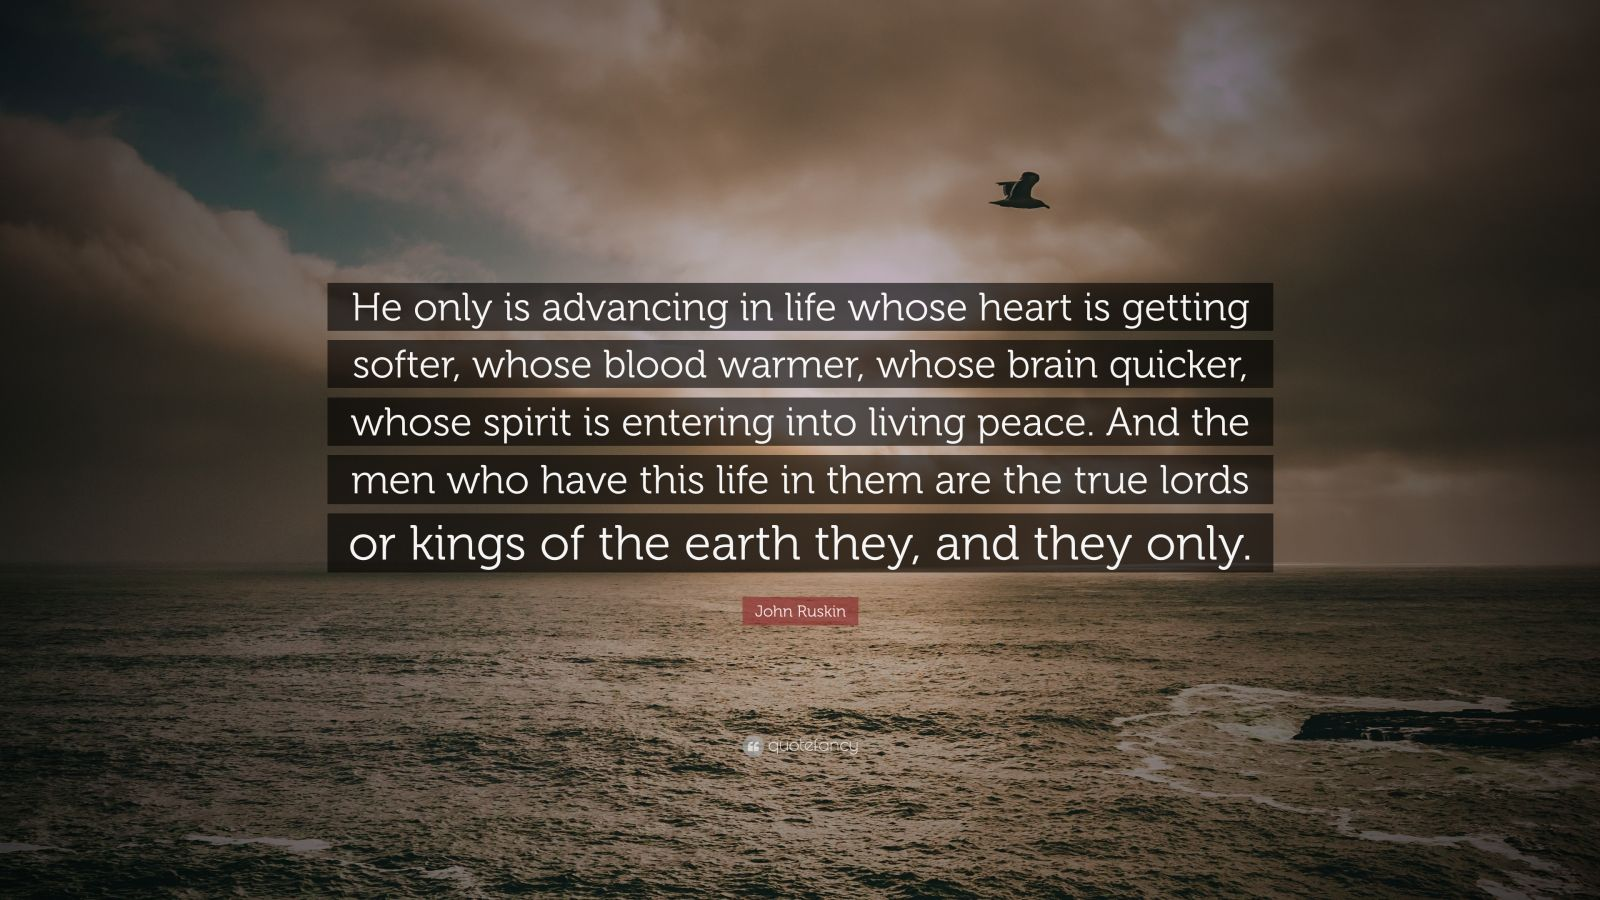 """John Ruskin Quote: """"He only is advancing in life whose heart is getting softer, whose blood warmer, whose brain quicker, whose spirit is entering into living peace. And the men who have this life in them are the true lords or kings of the earth they, and they only."""""""